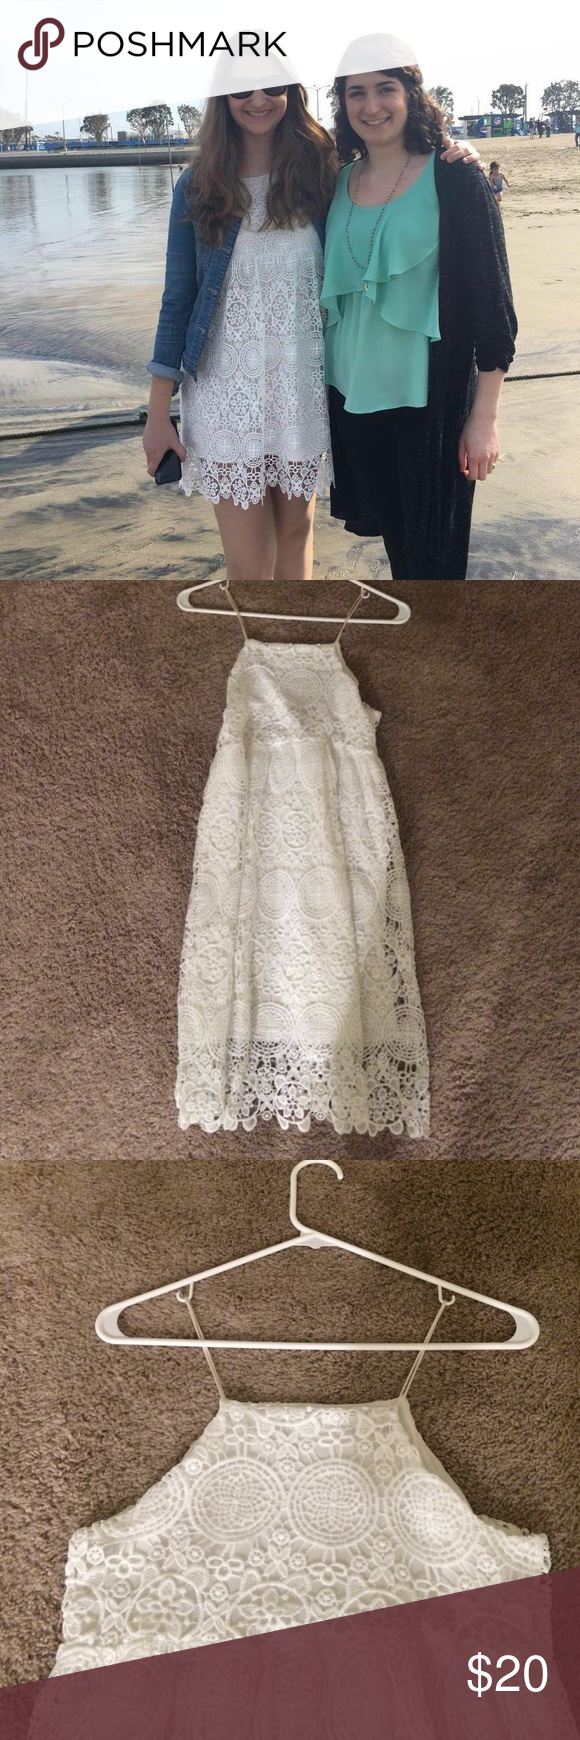 ShopRuche White Lace Dress Size S Beautiful lace detail and extremely cute with a jean jacket. Size S. Worn once ShopRuche Dresses